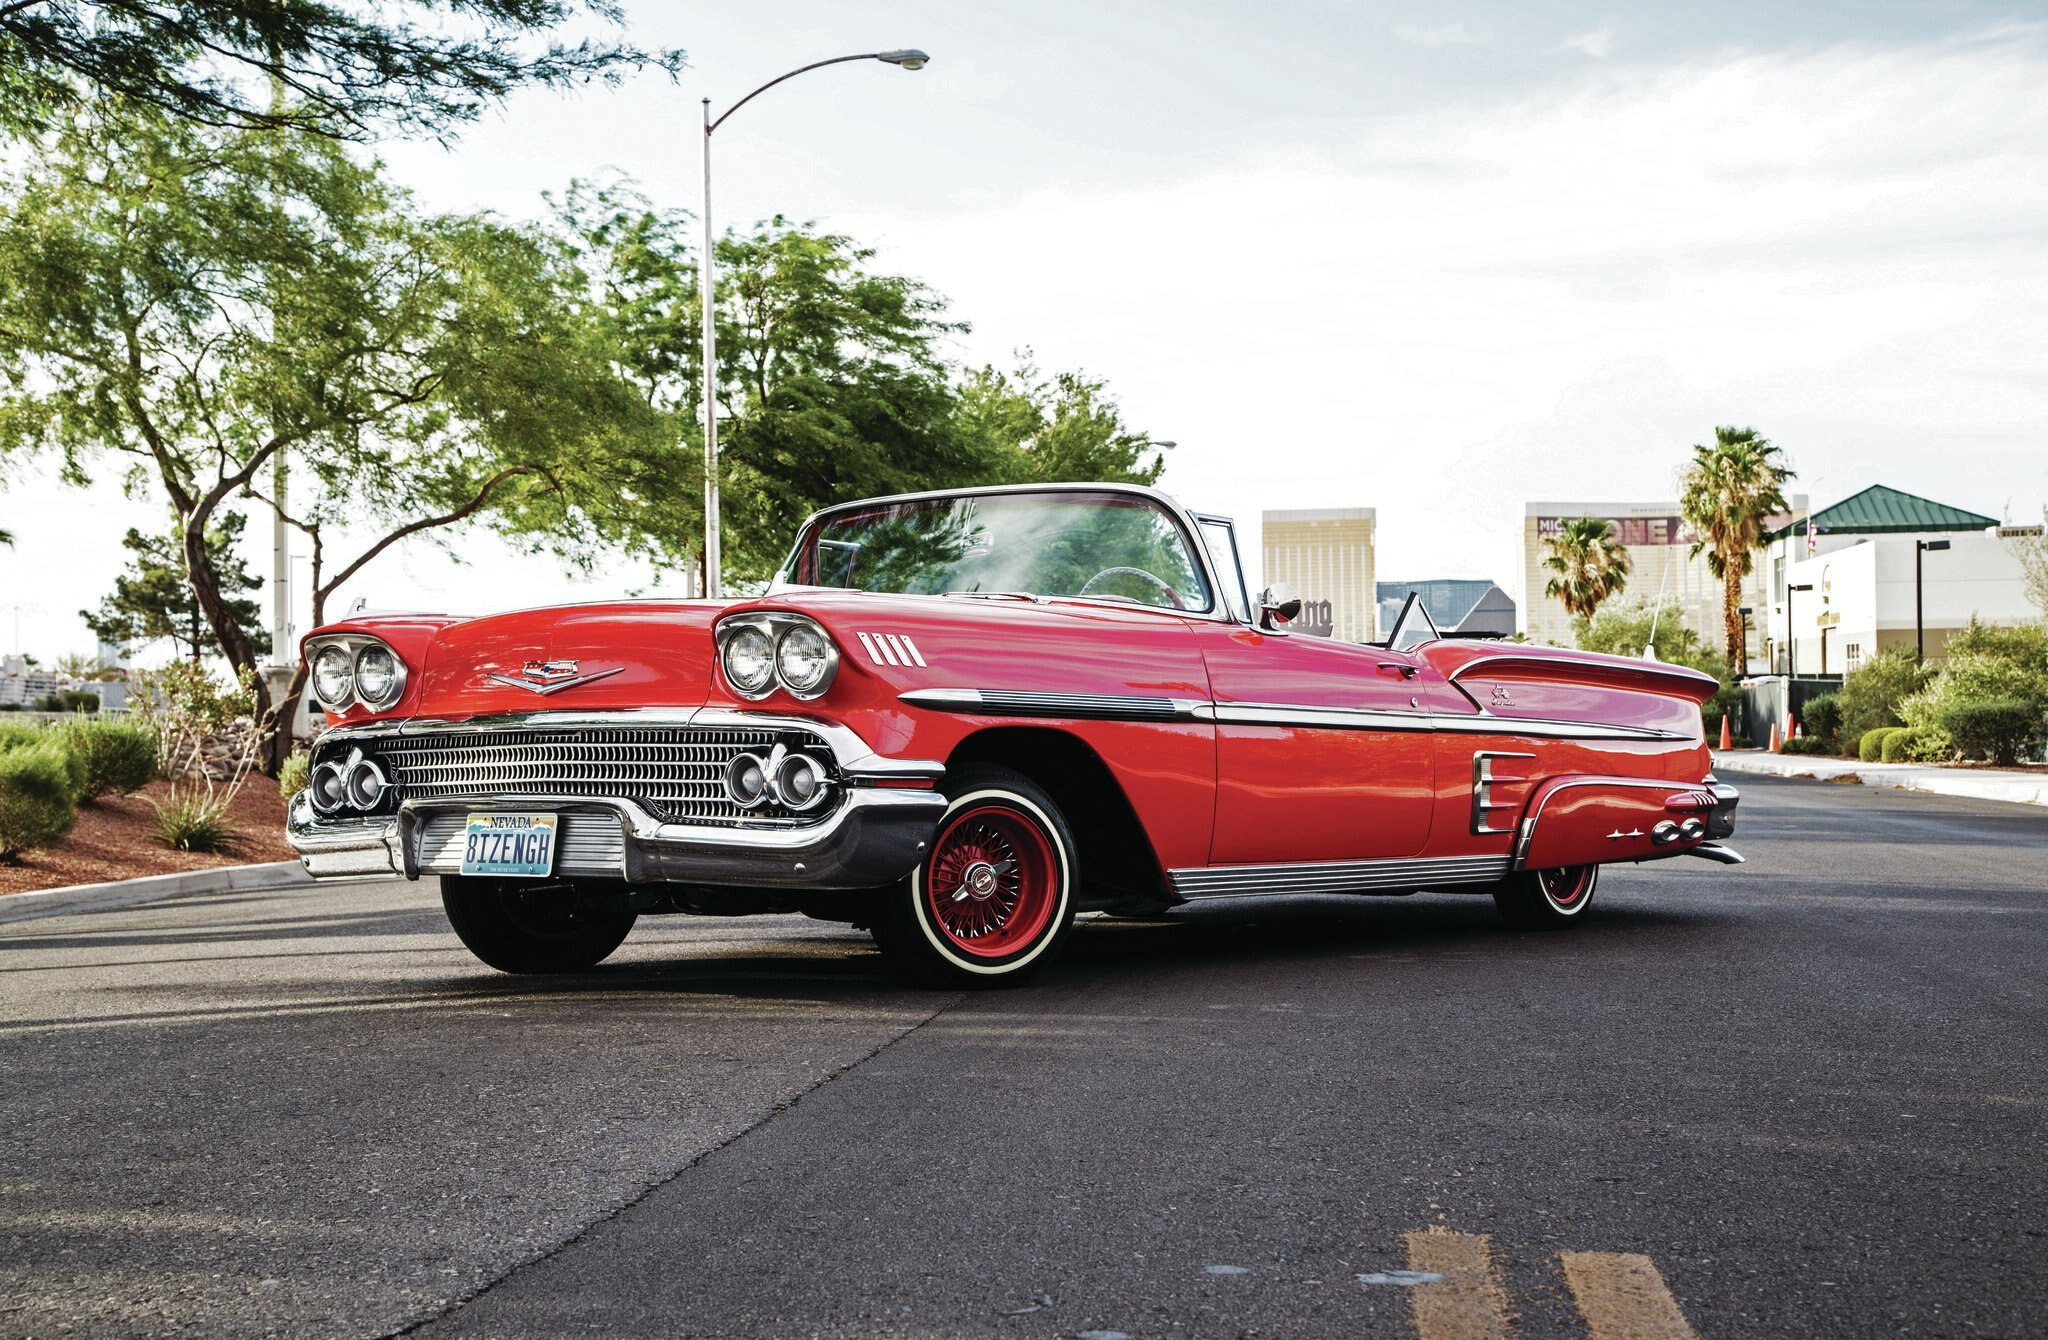 1958 chevrolet impala convertible vegas vice. Cars Review. Best American Auto & Cars Review